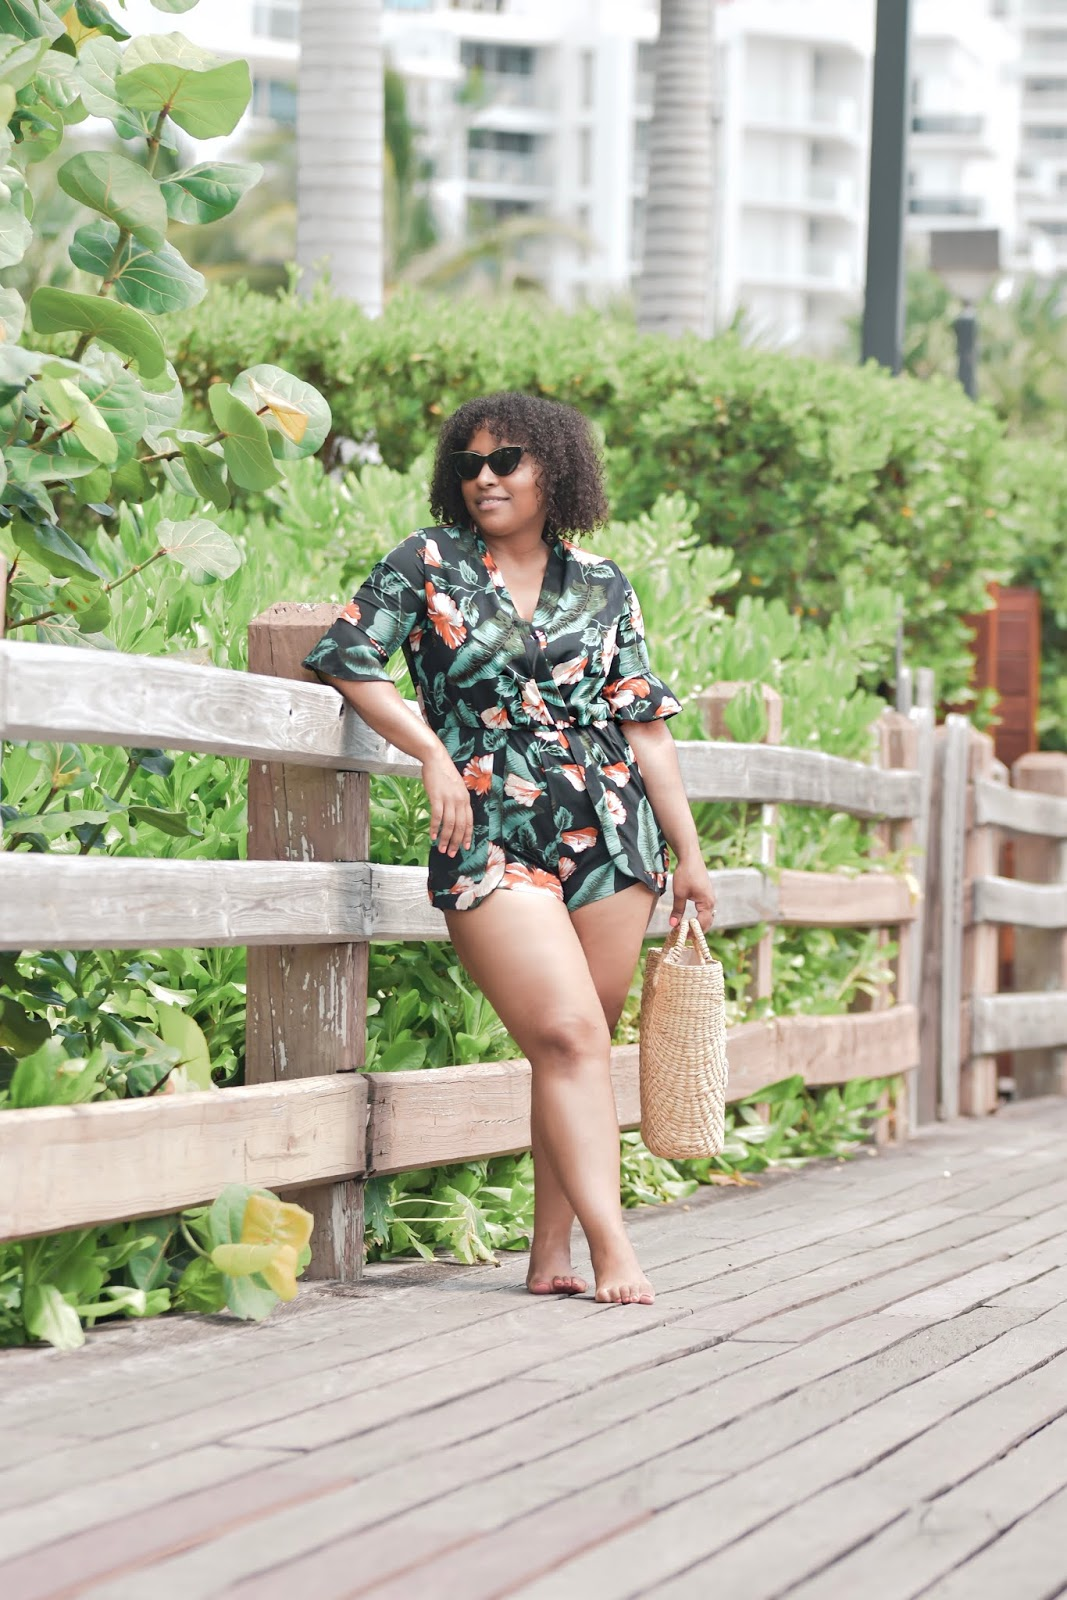 Shein, shein gals, summer outfits, outfit ideas for summer, beach coverups, floral print, summer looks, natural hair